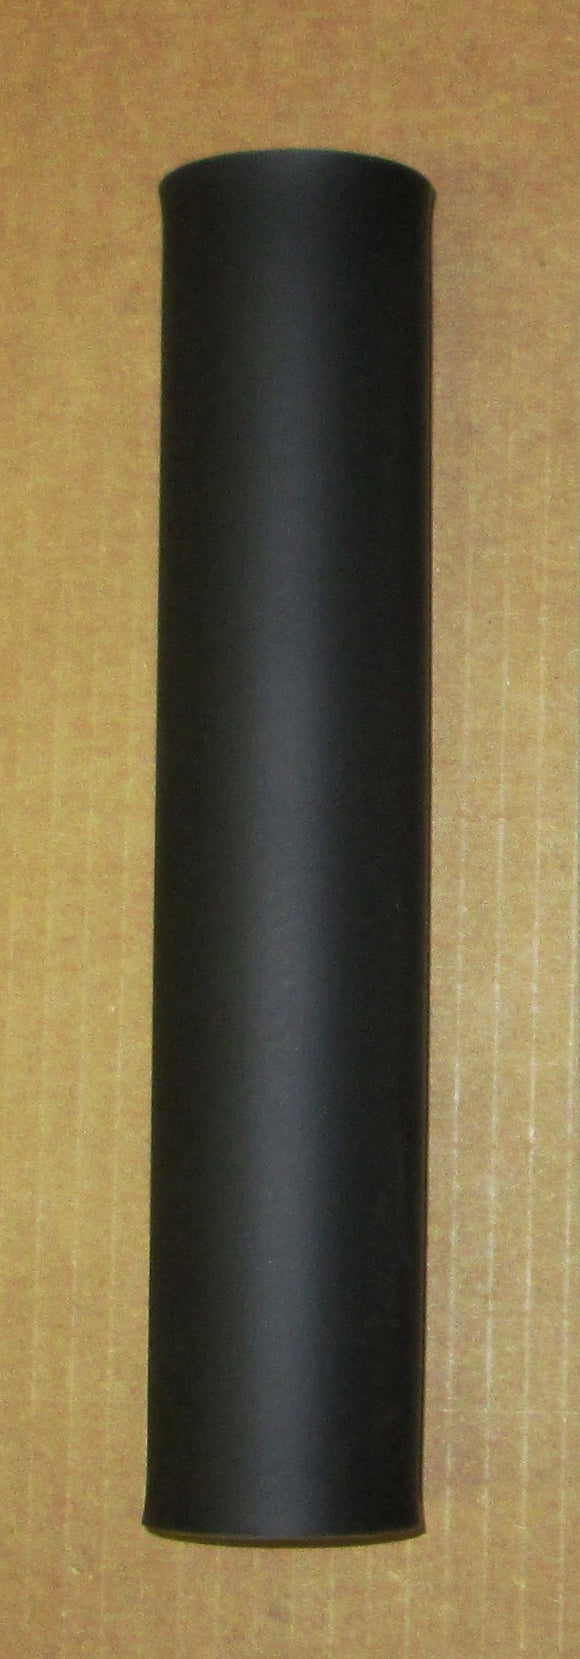 UPGRADE ONLY-Black Vinyl Insert- Large-must be purchased with Rod Holder